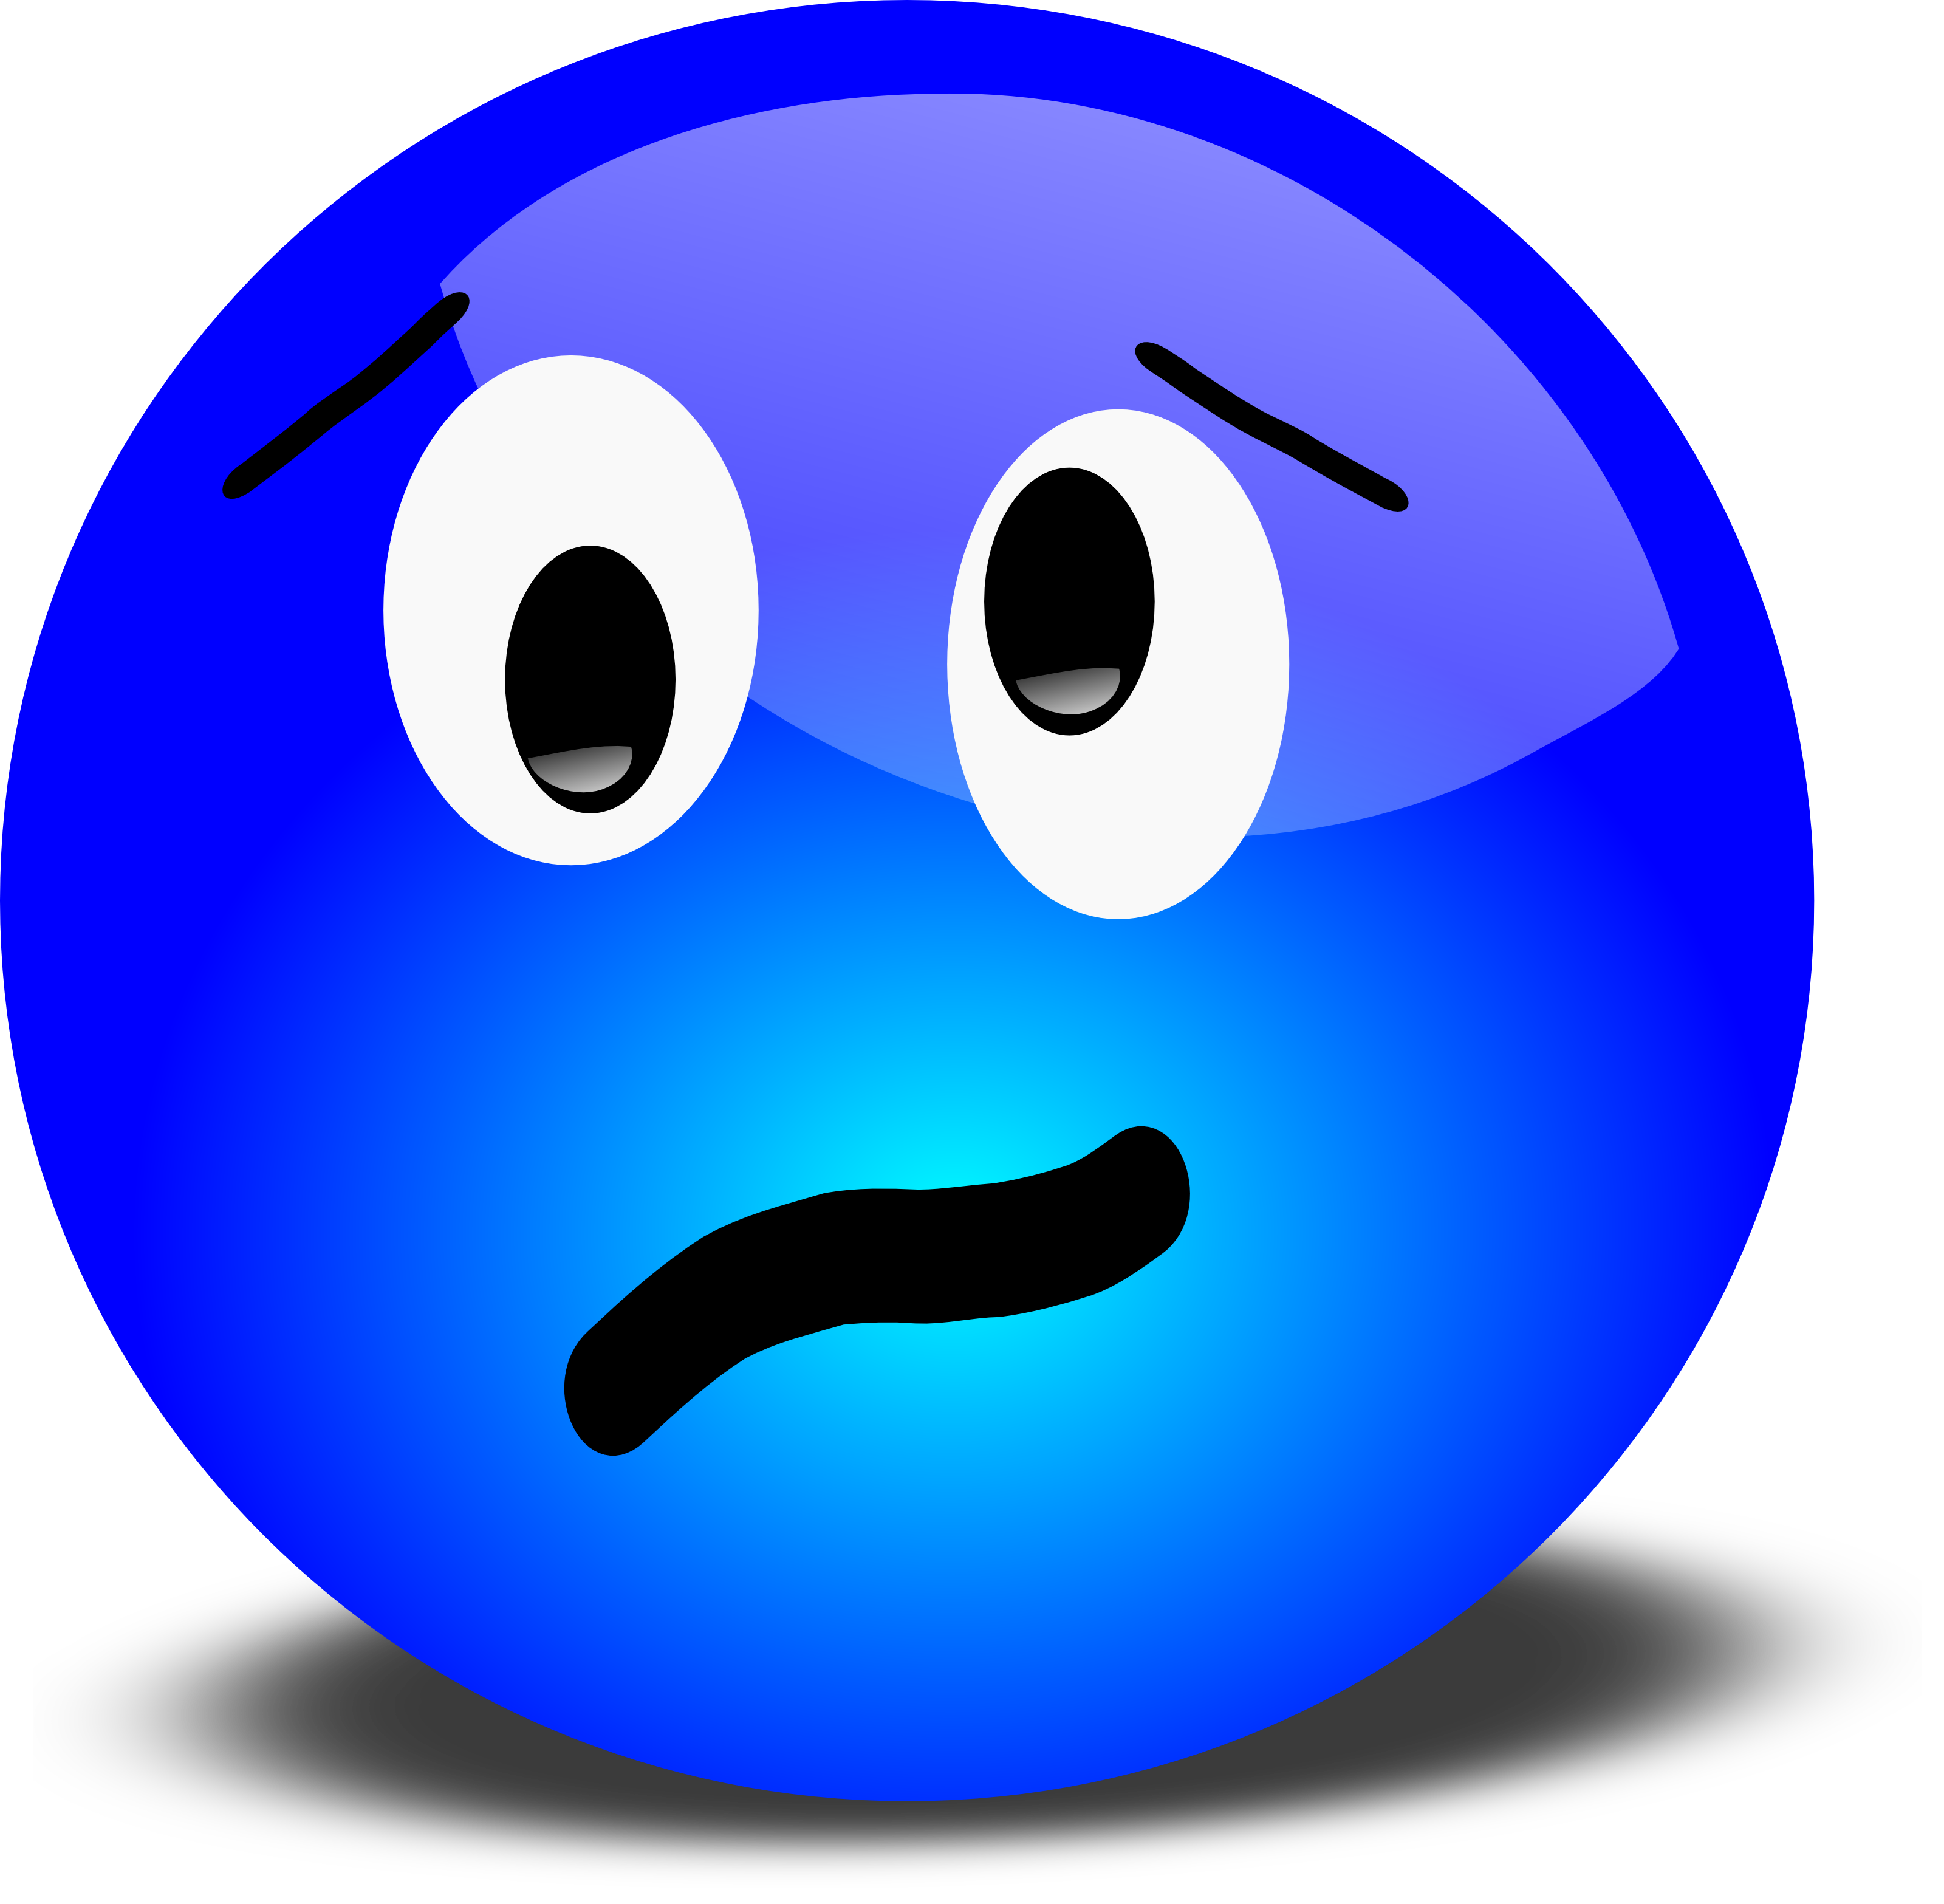 Blue Smiley Face Png | Clipart Panda - Free Clipart Images